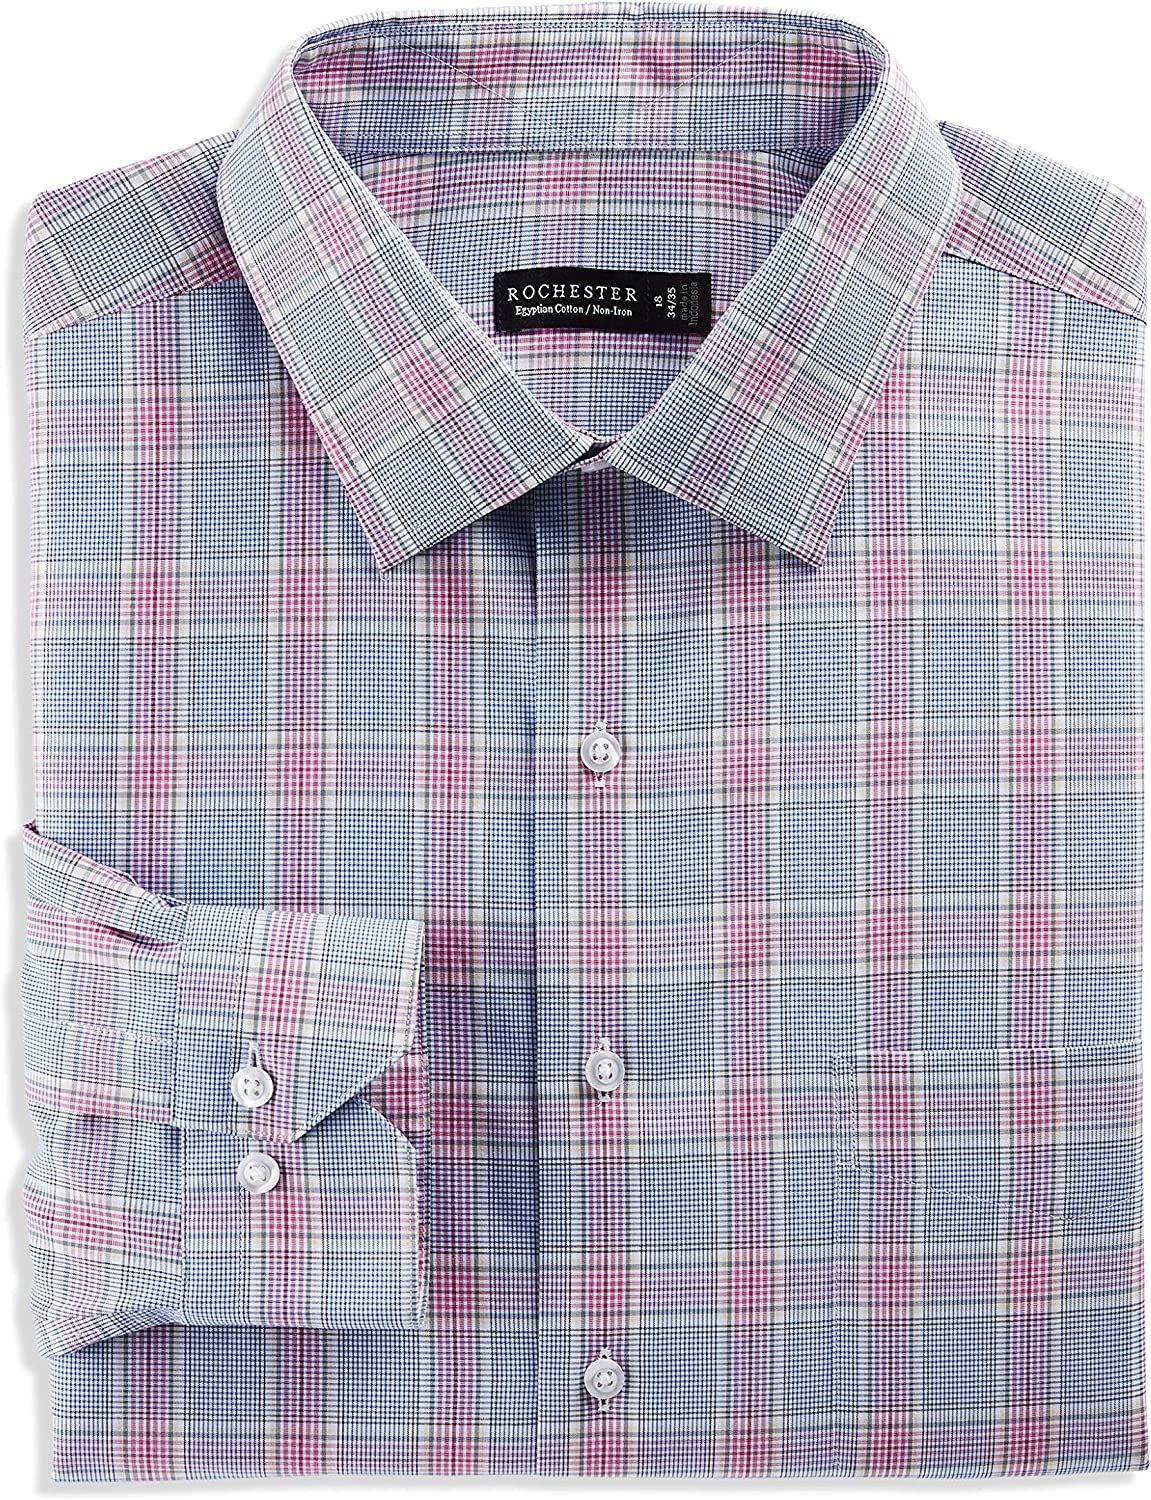 Rochester by DXL Big and Tall Large Multi Plaid Dress Shirt, Multi